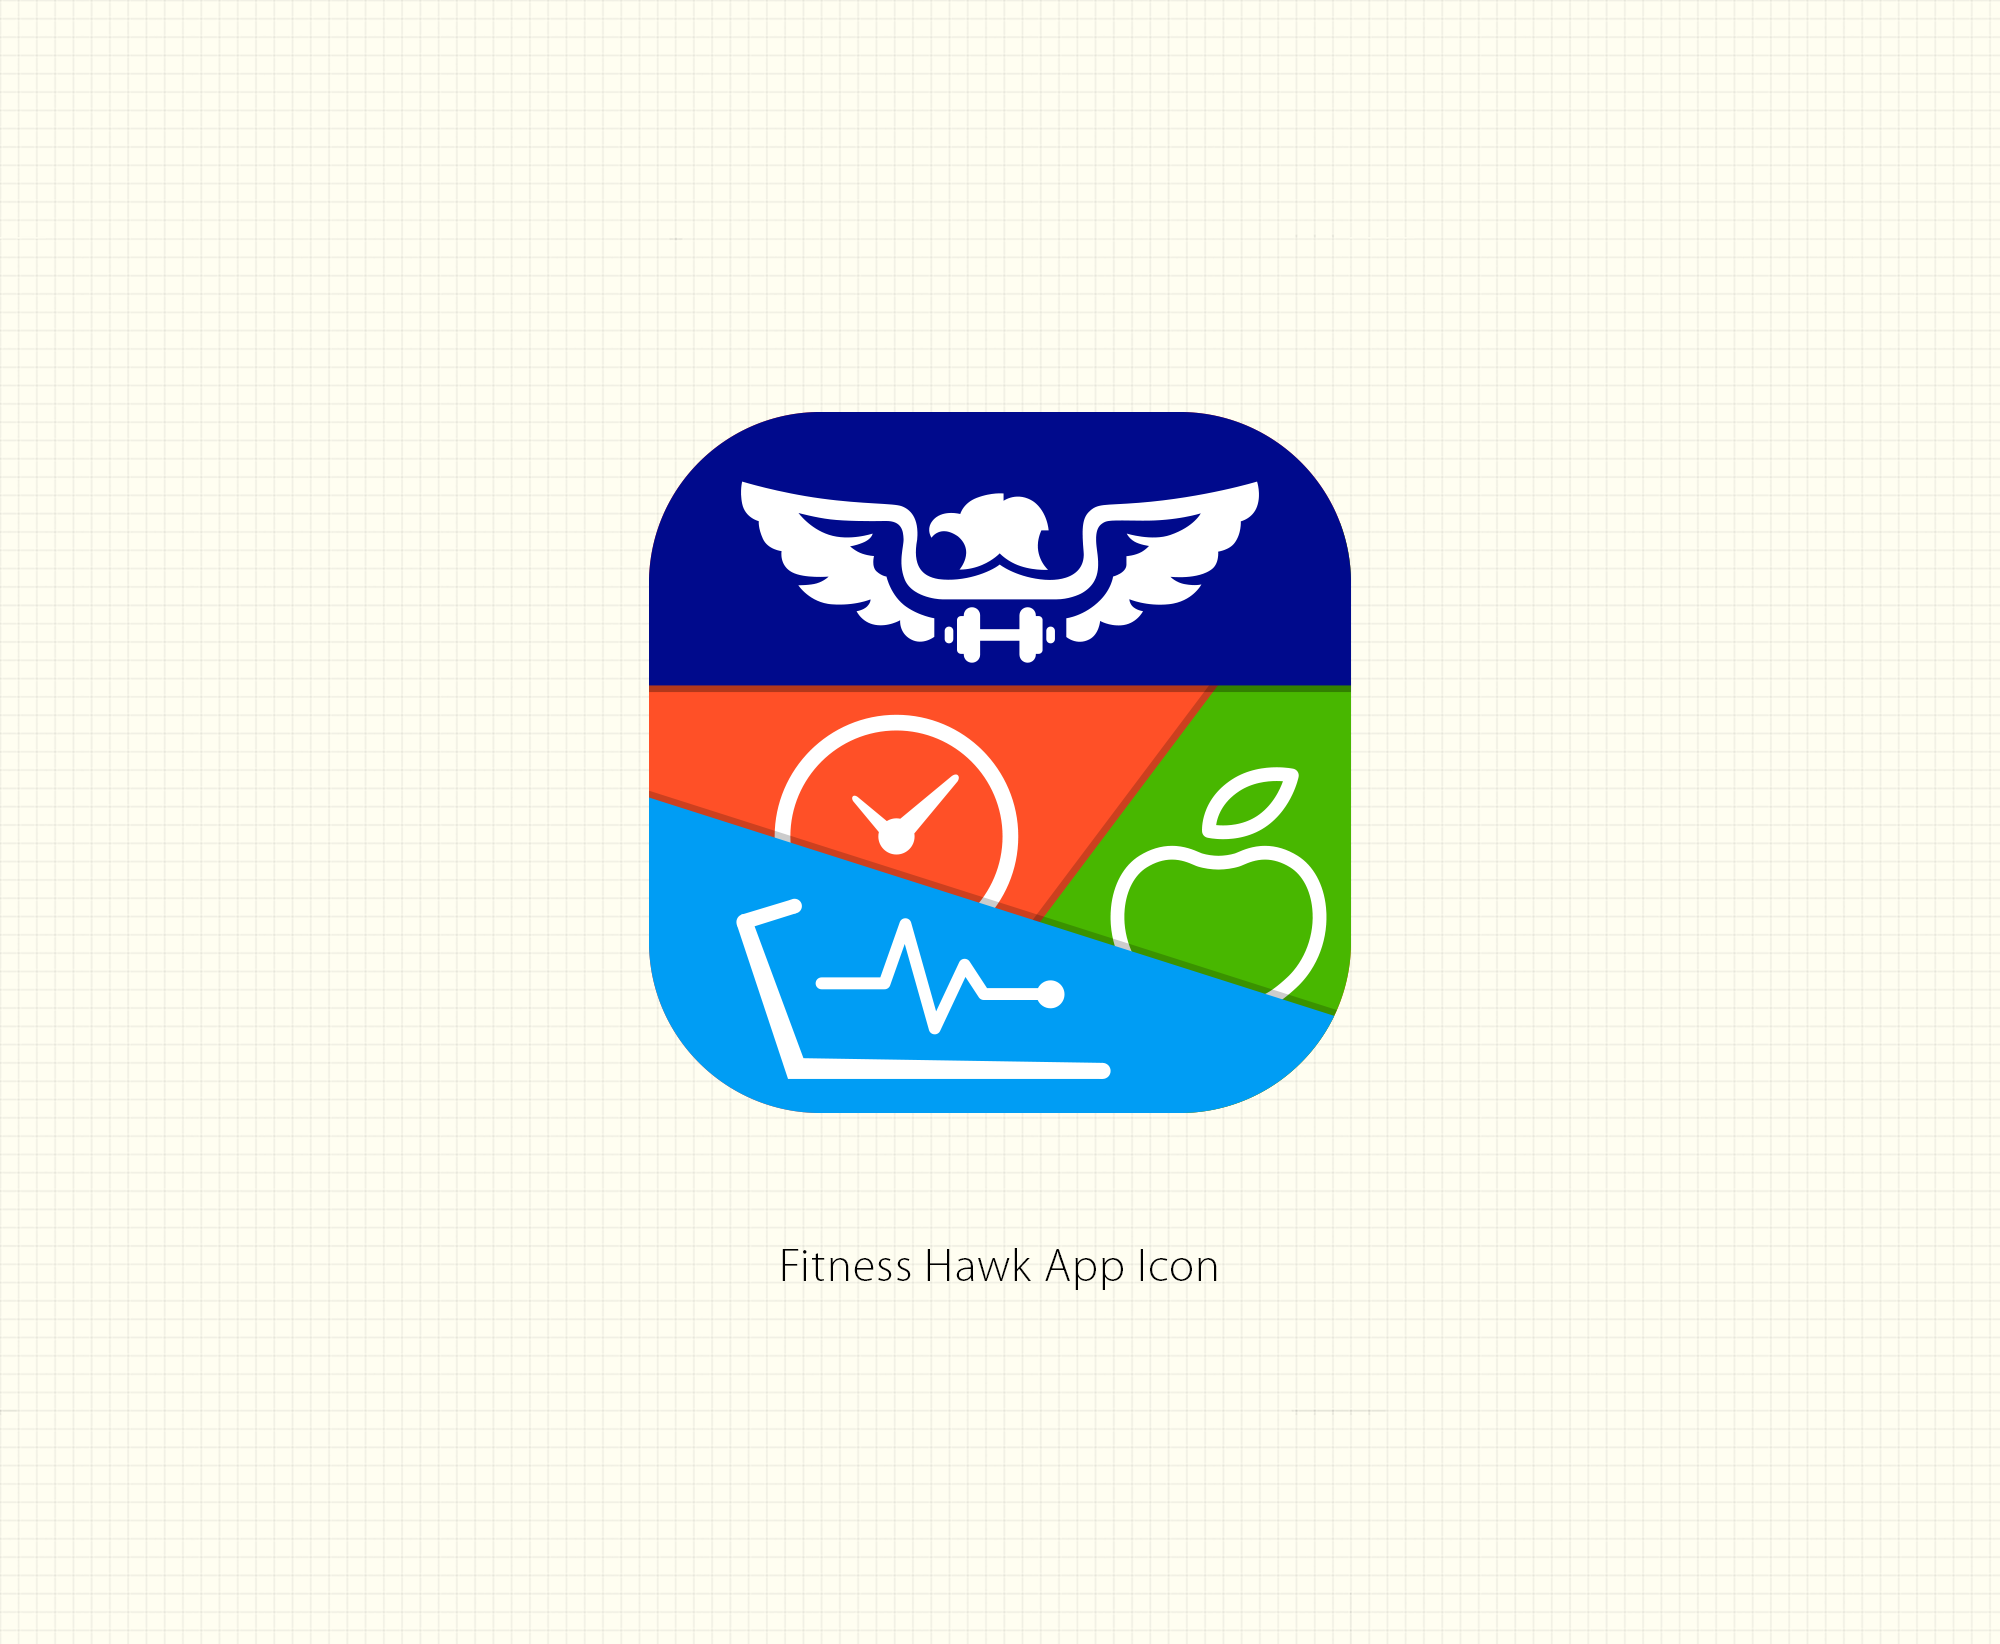 Recreate a Fitness App Icon